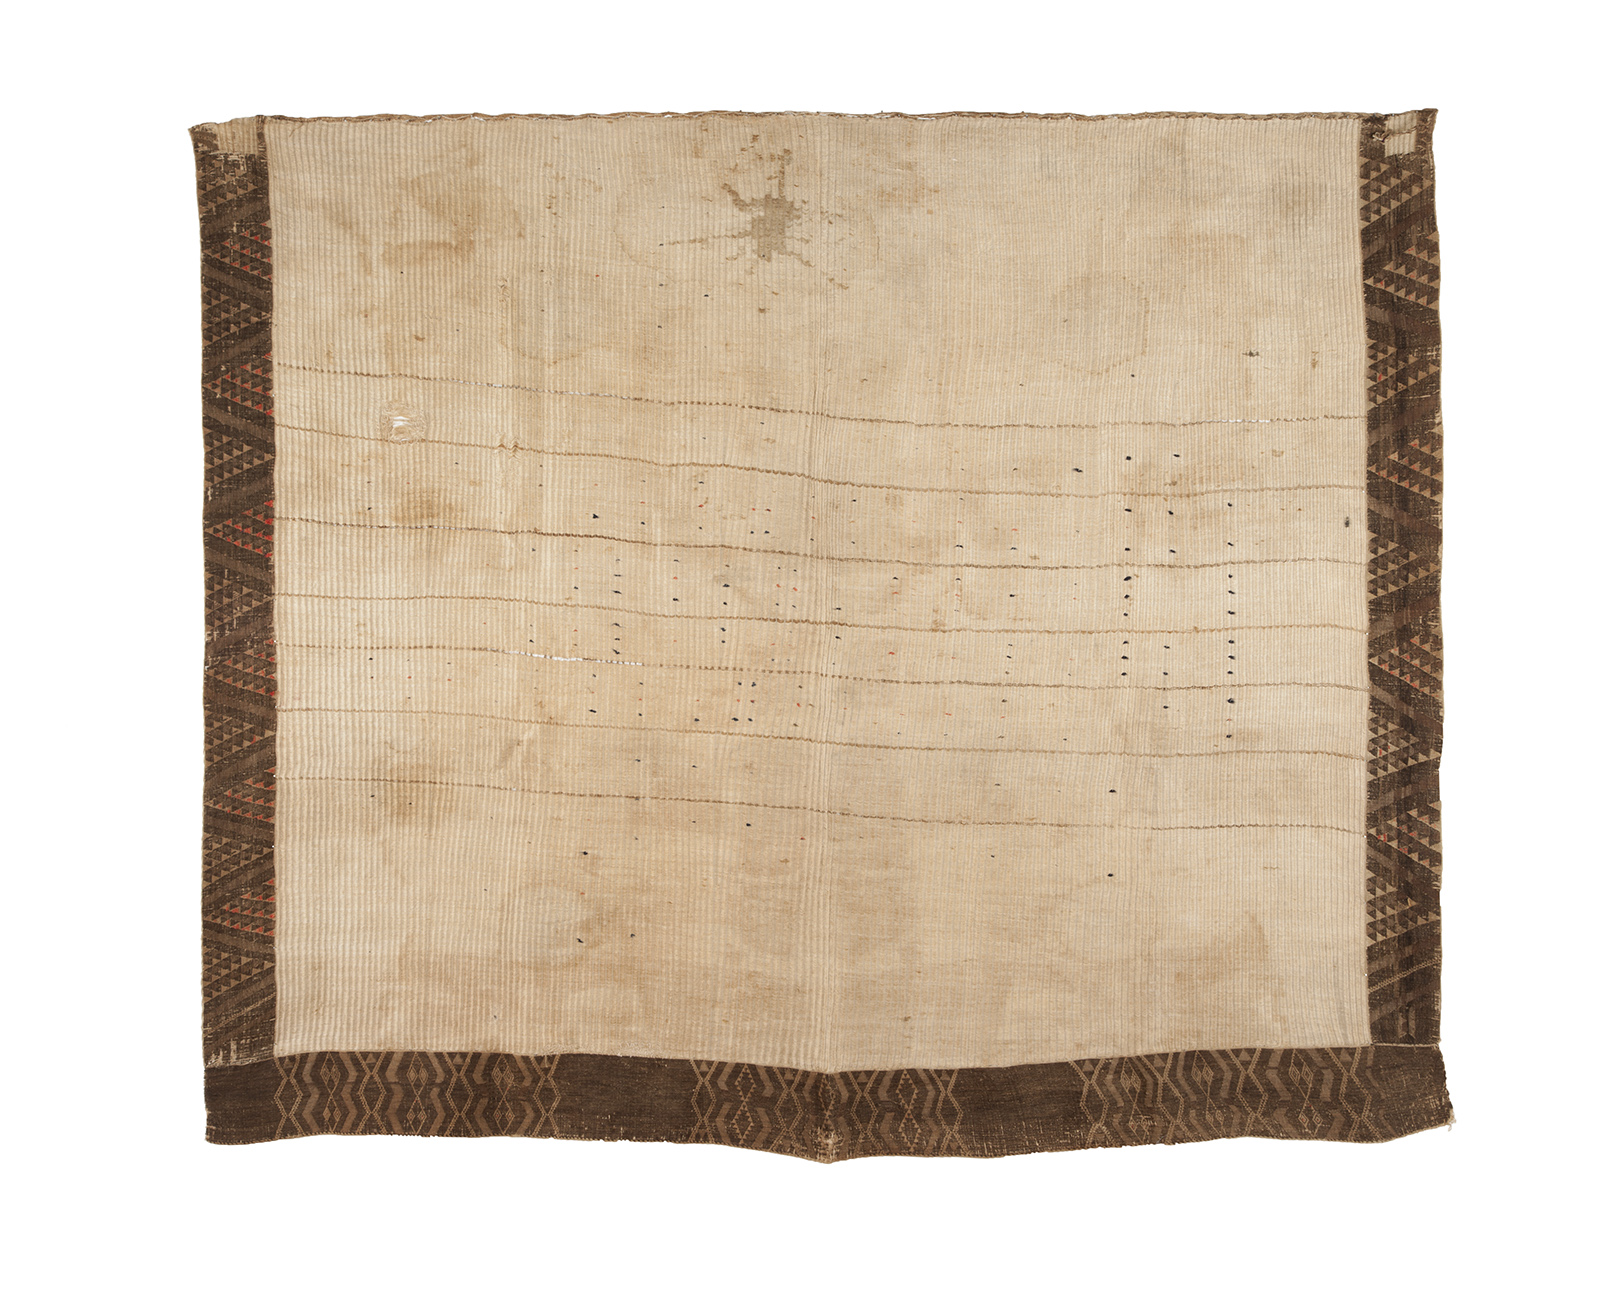 Early kaitaka paepaeroa cloak, New Zealand.